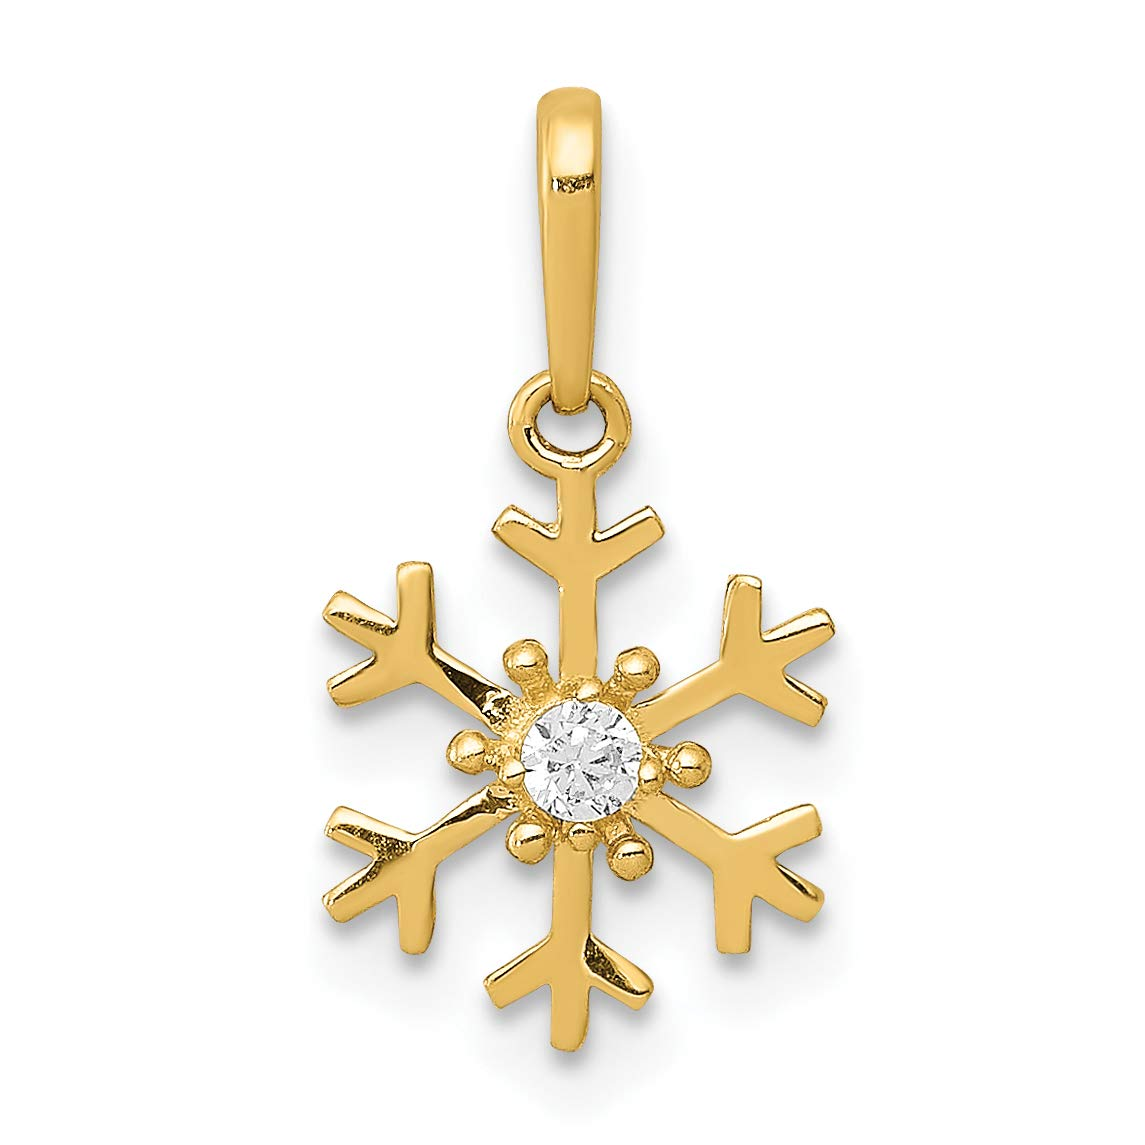 14k Yellow Gold Polished Snowflake Pendant with CZ Center Stone 9x8mm